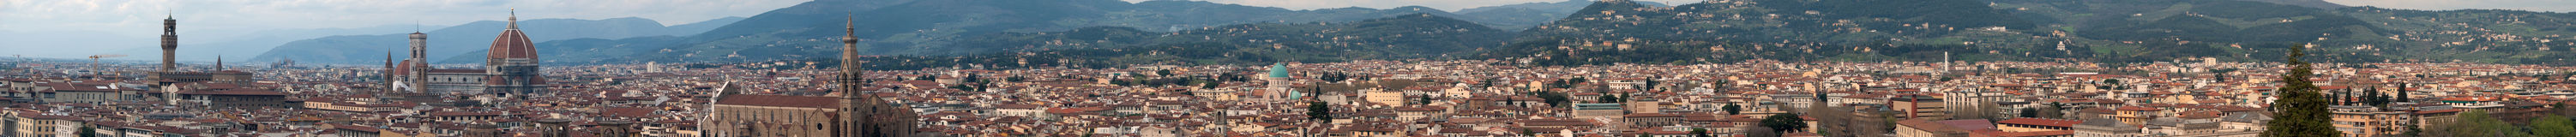 Florence from Piazzale Michelangelo Stock Photo